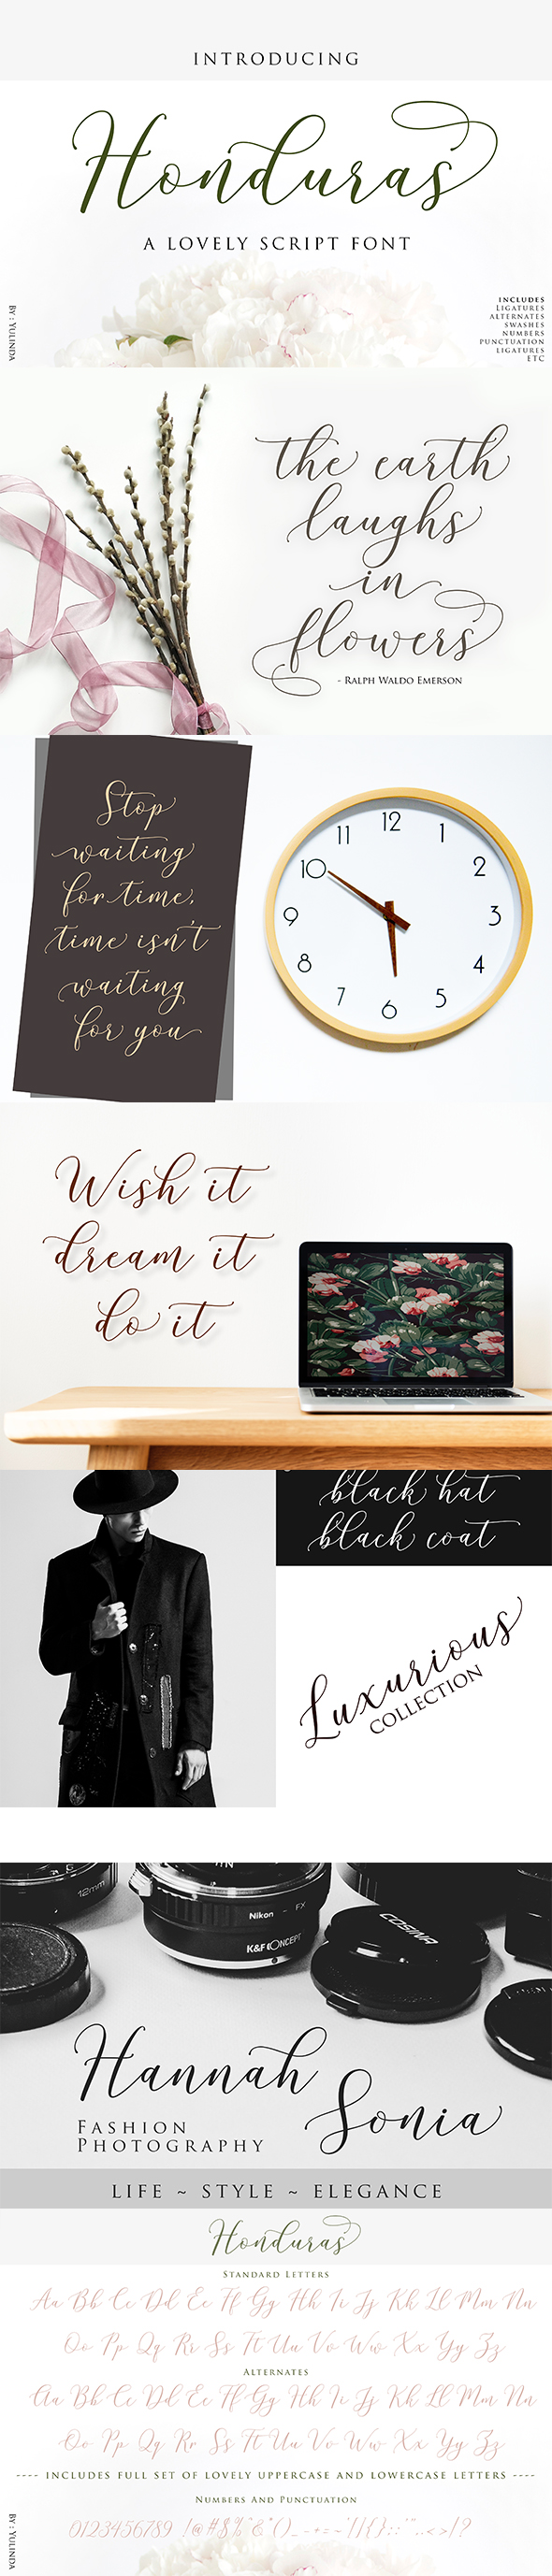 Bold and Vintage Fonts from GraphicRiver (Page 8)